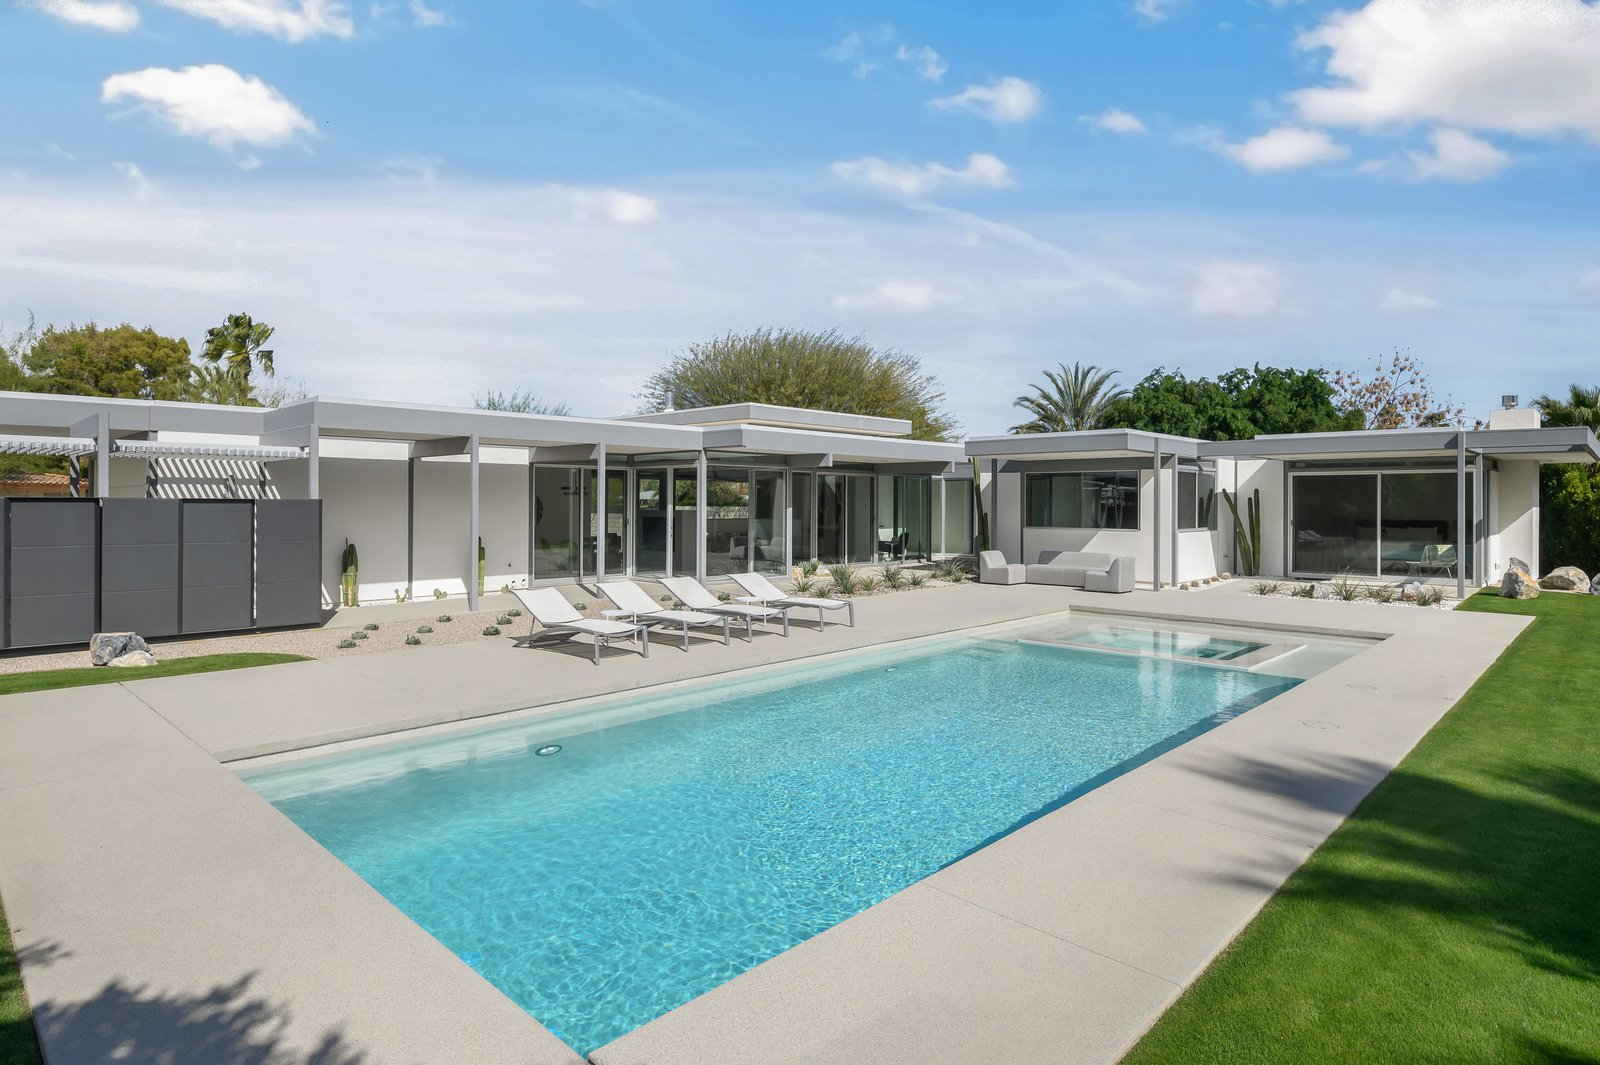 Donald Wexler Steel and Glass 2015 House Pool